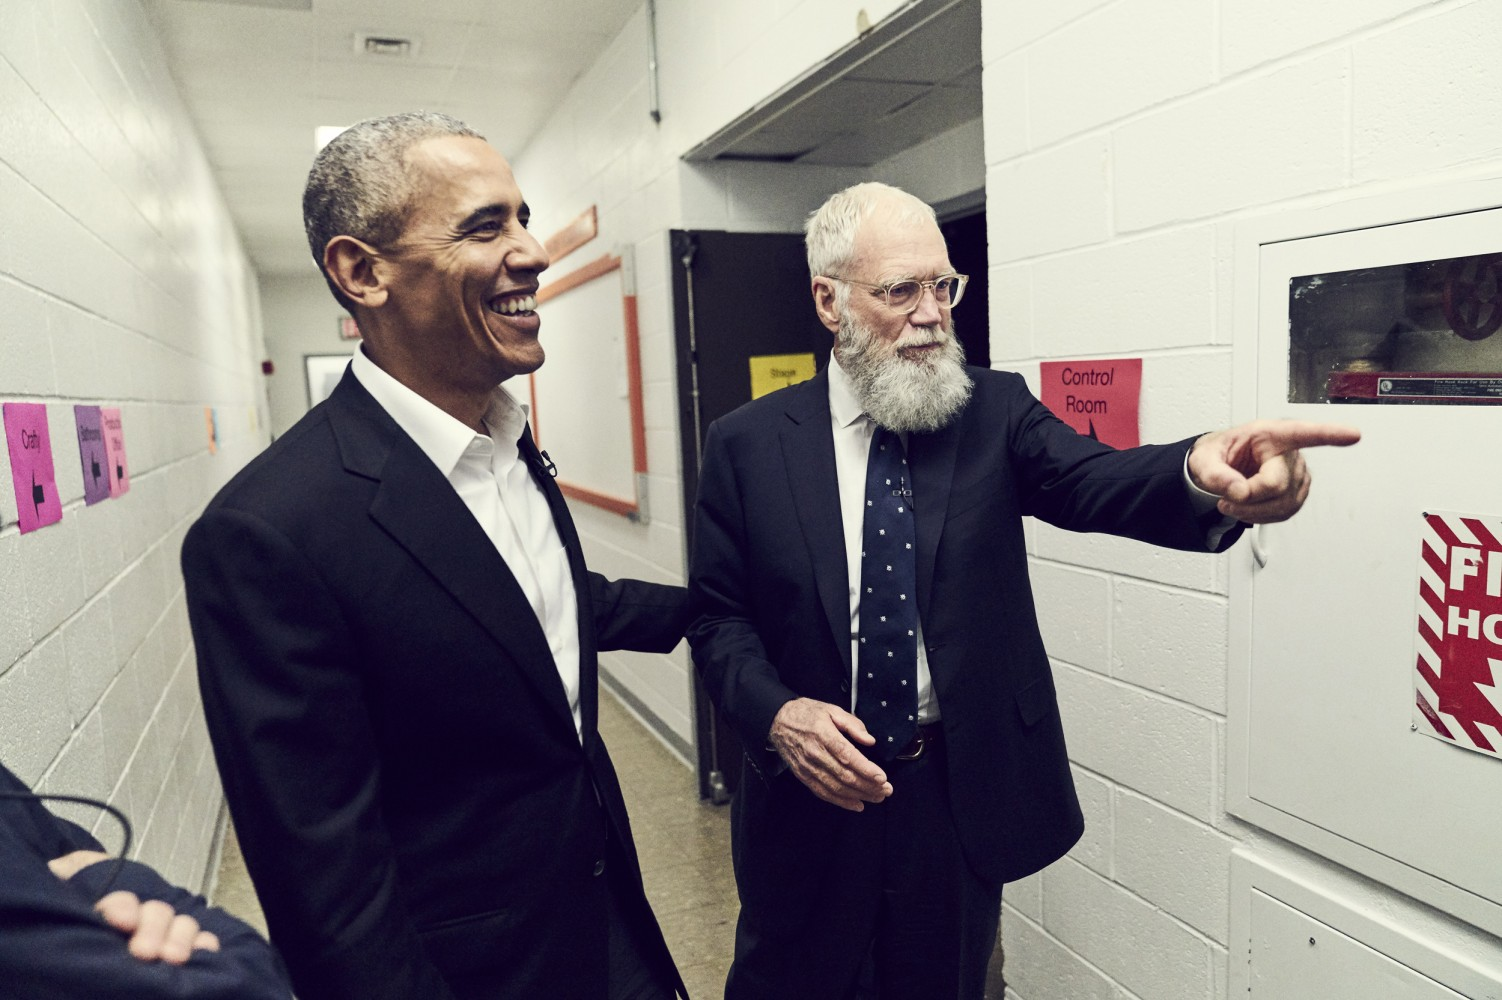 Obama Danced With Prince Weeks Before He Died, Ex-President Tells Letterman